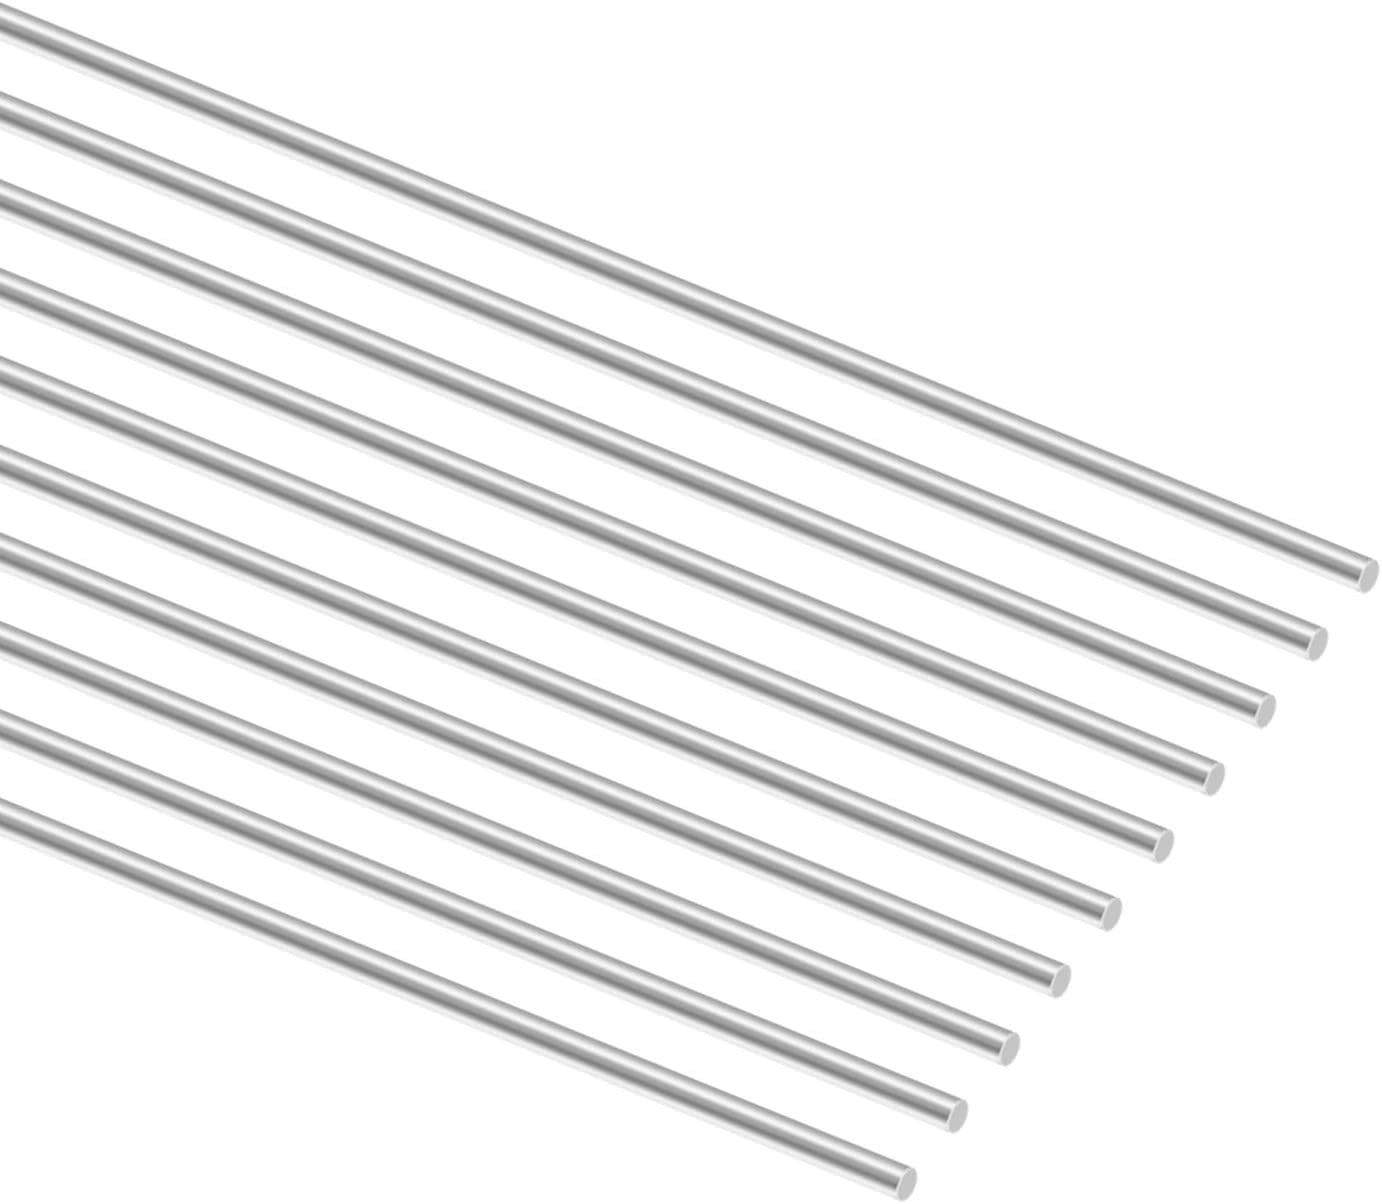 MHUI Stainless Steel Solid Round Rods Metal Lathe Bar Stock 2mm,for RC Airplane DIY Craft,Length 5Pcs 2mm ,Diameter 1m//3.28ft